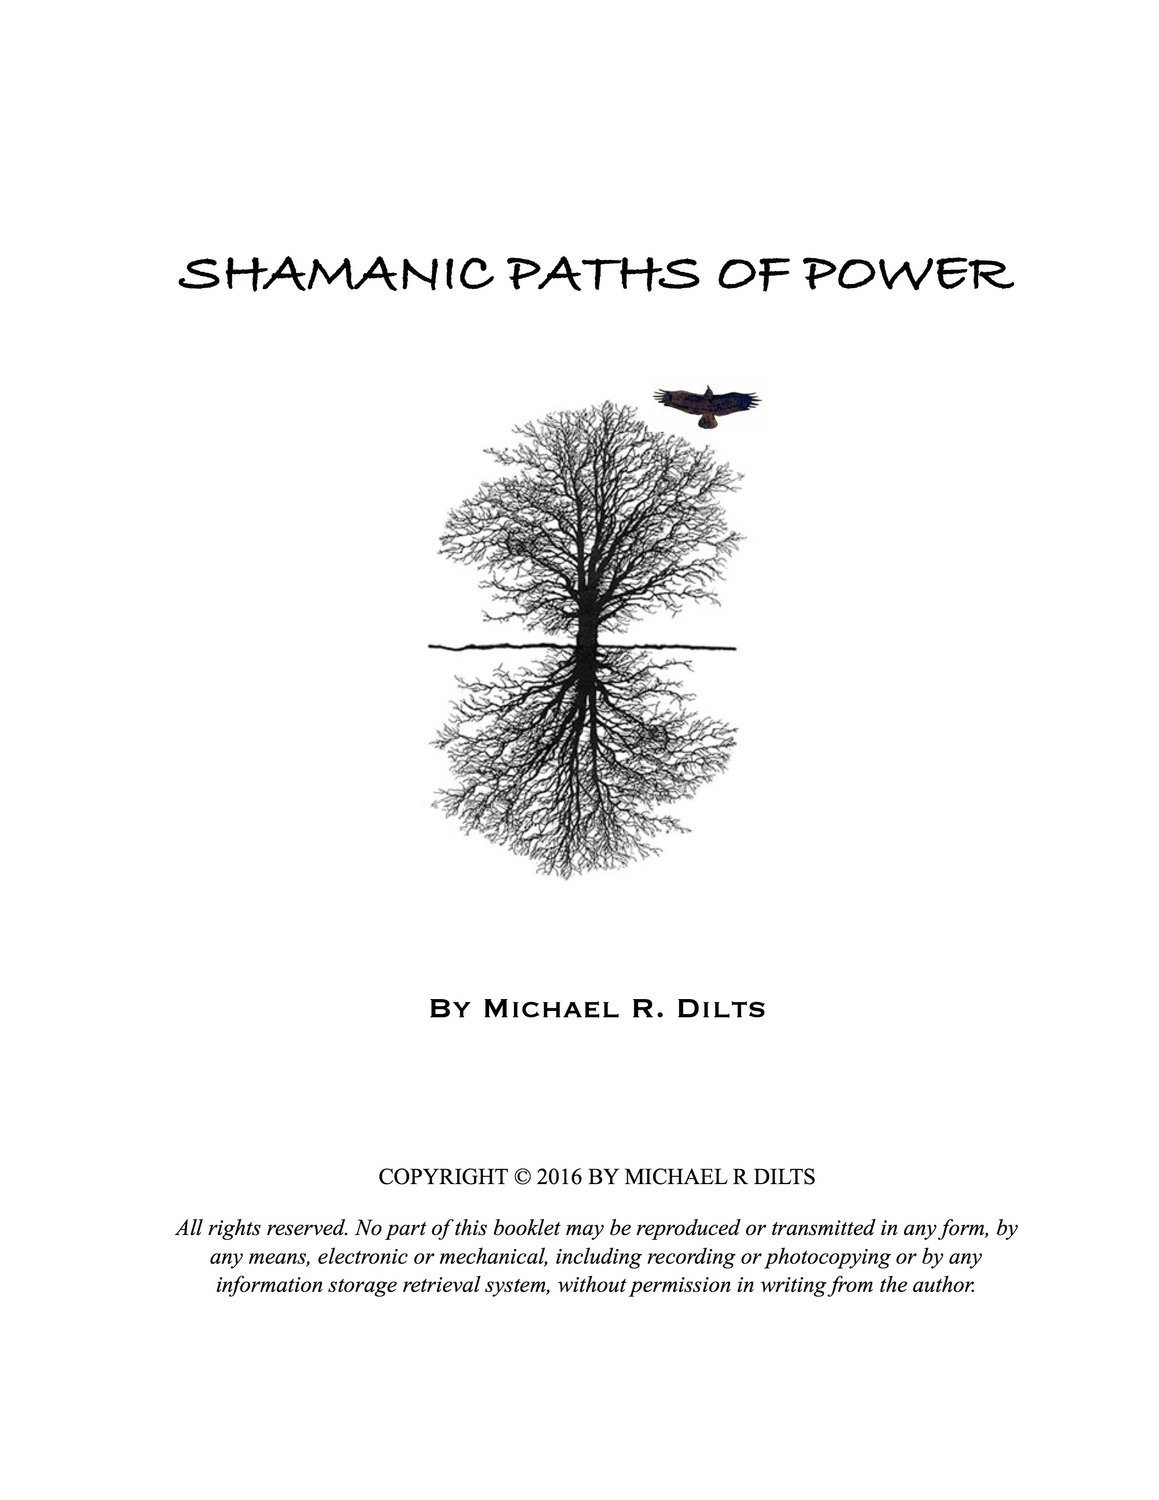 Shamanic Paths of Power by Michael R. Dilts [Booklet]